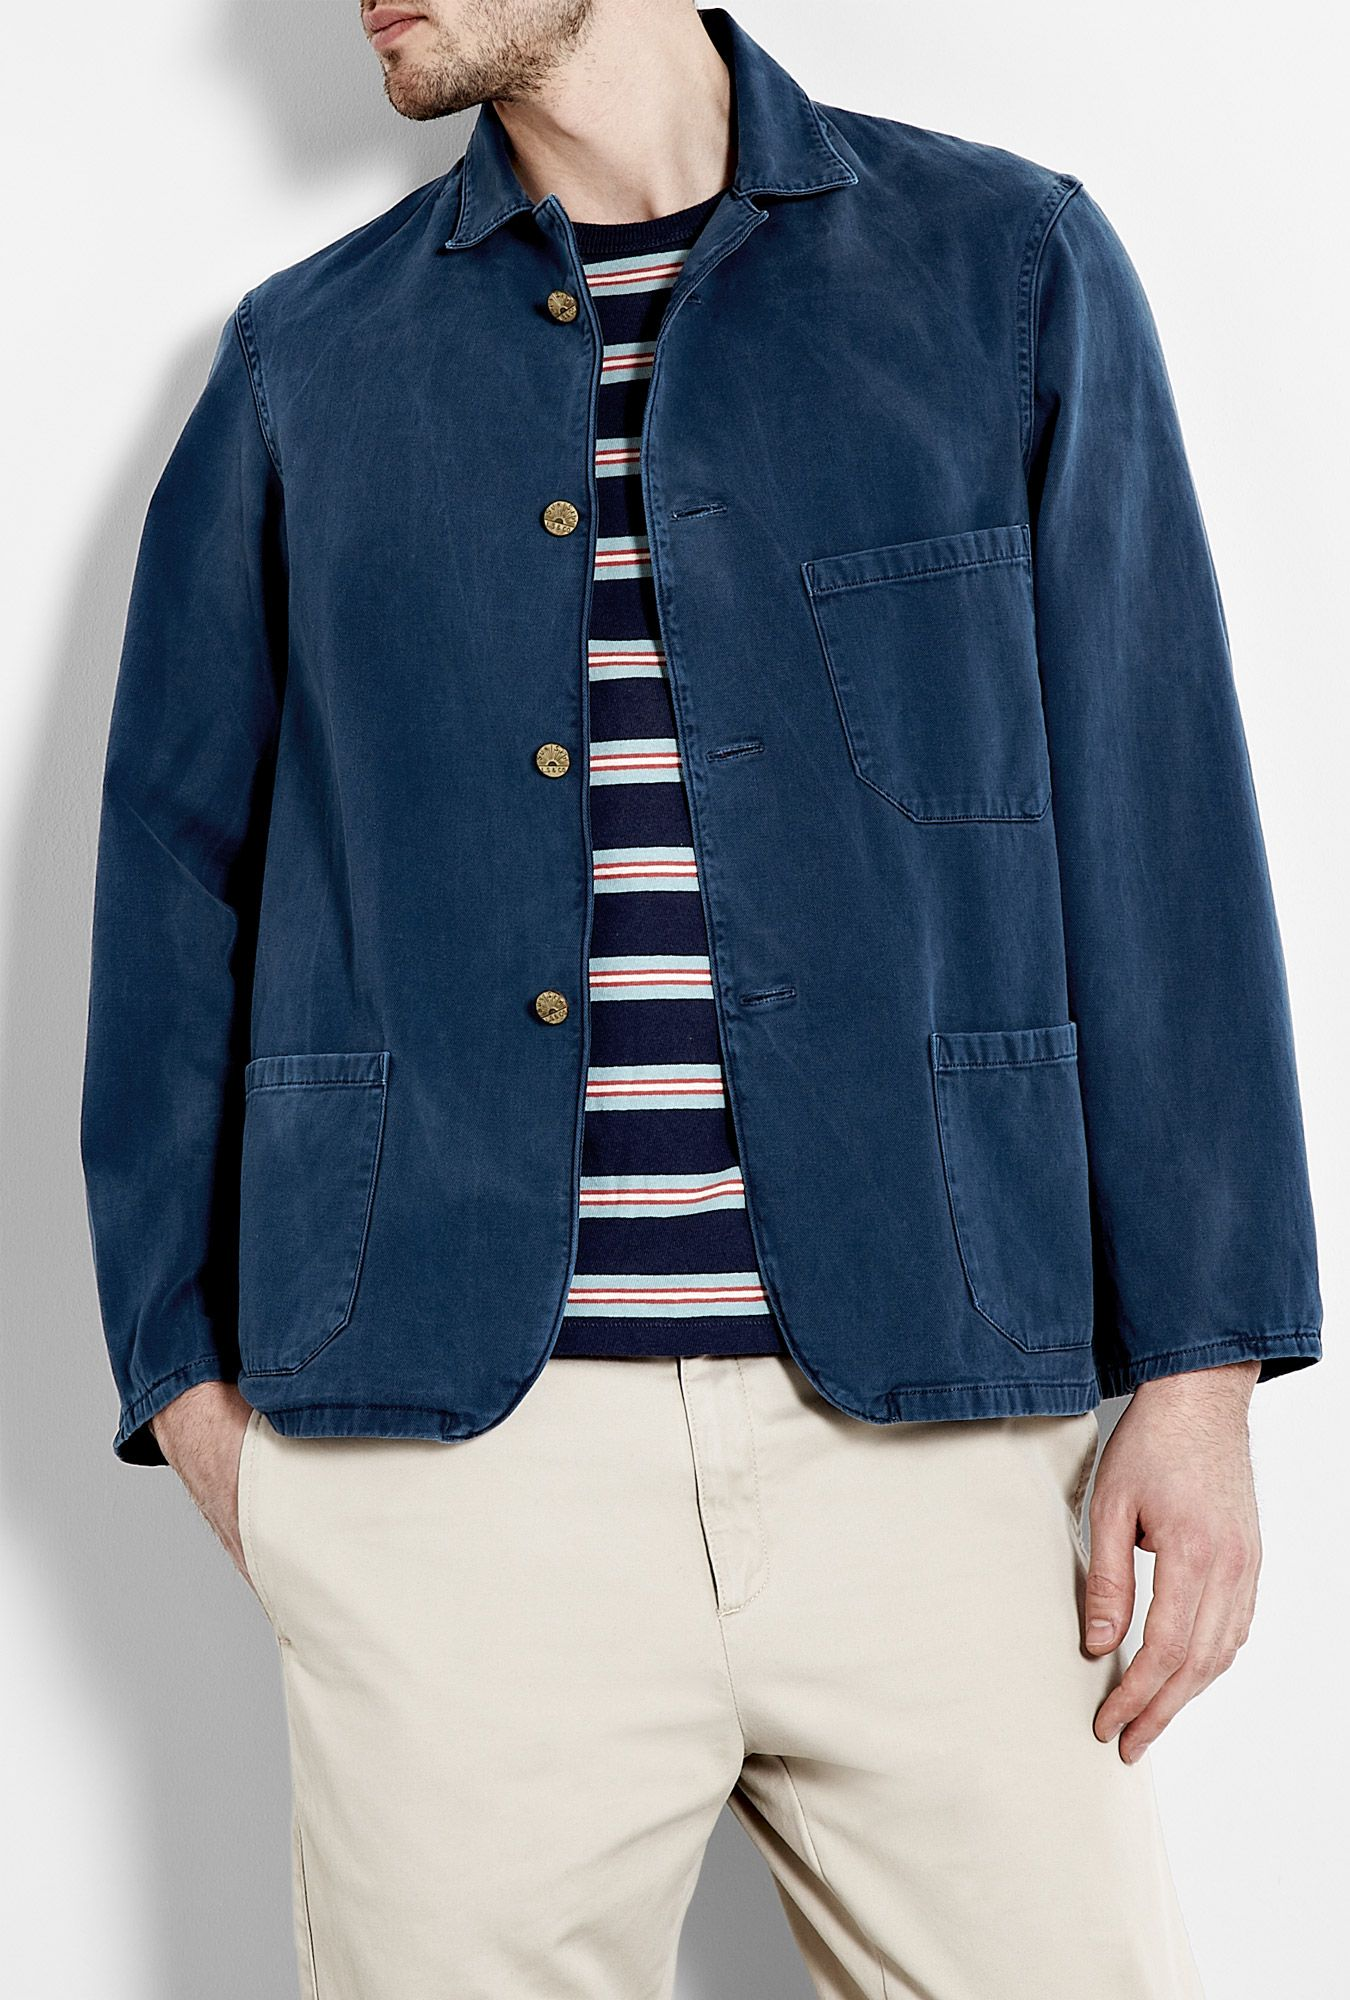 This jacket is great. £240.